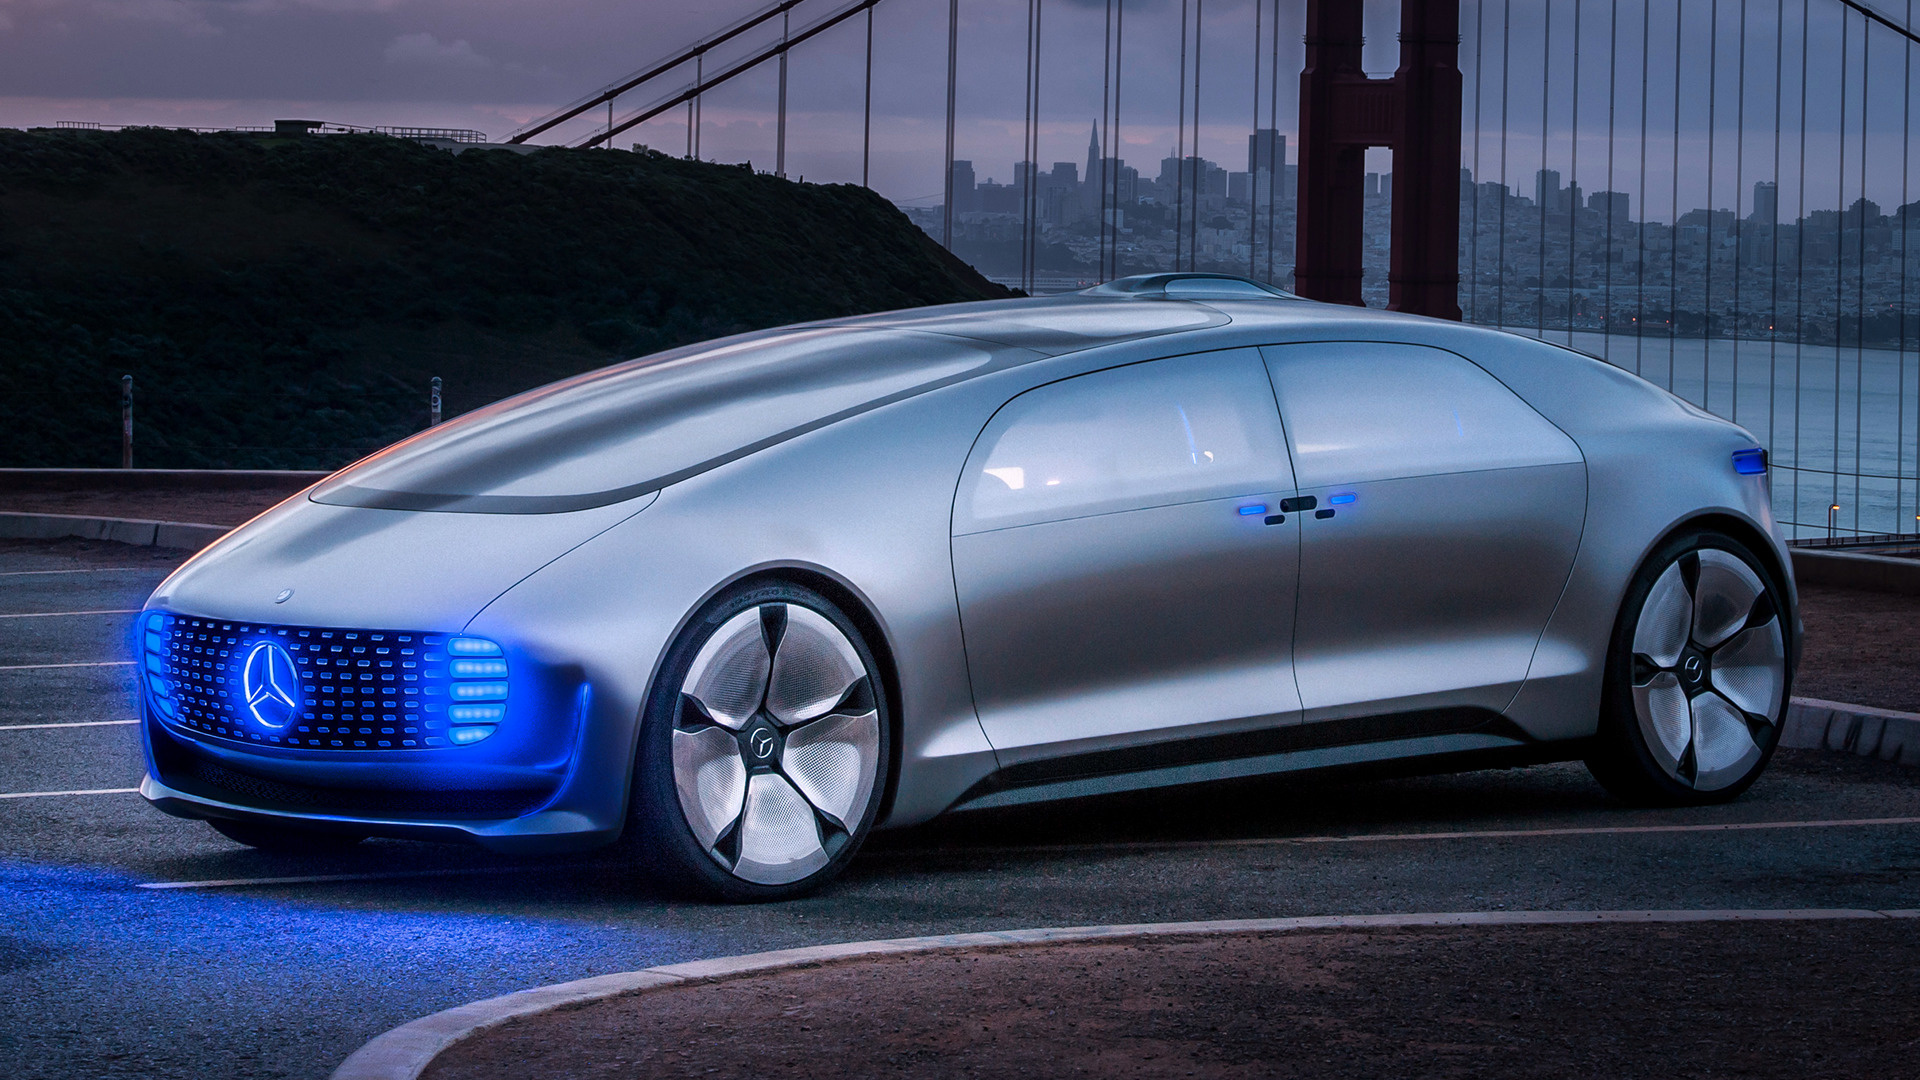 Mercedes F 015 >> Mercedes-Benz F 015 Luxury in Motion (2015) Wallpapers and HD Images - Car Pixel